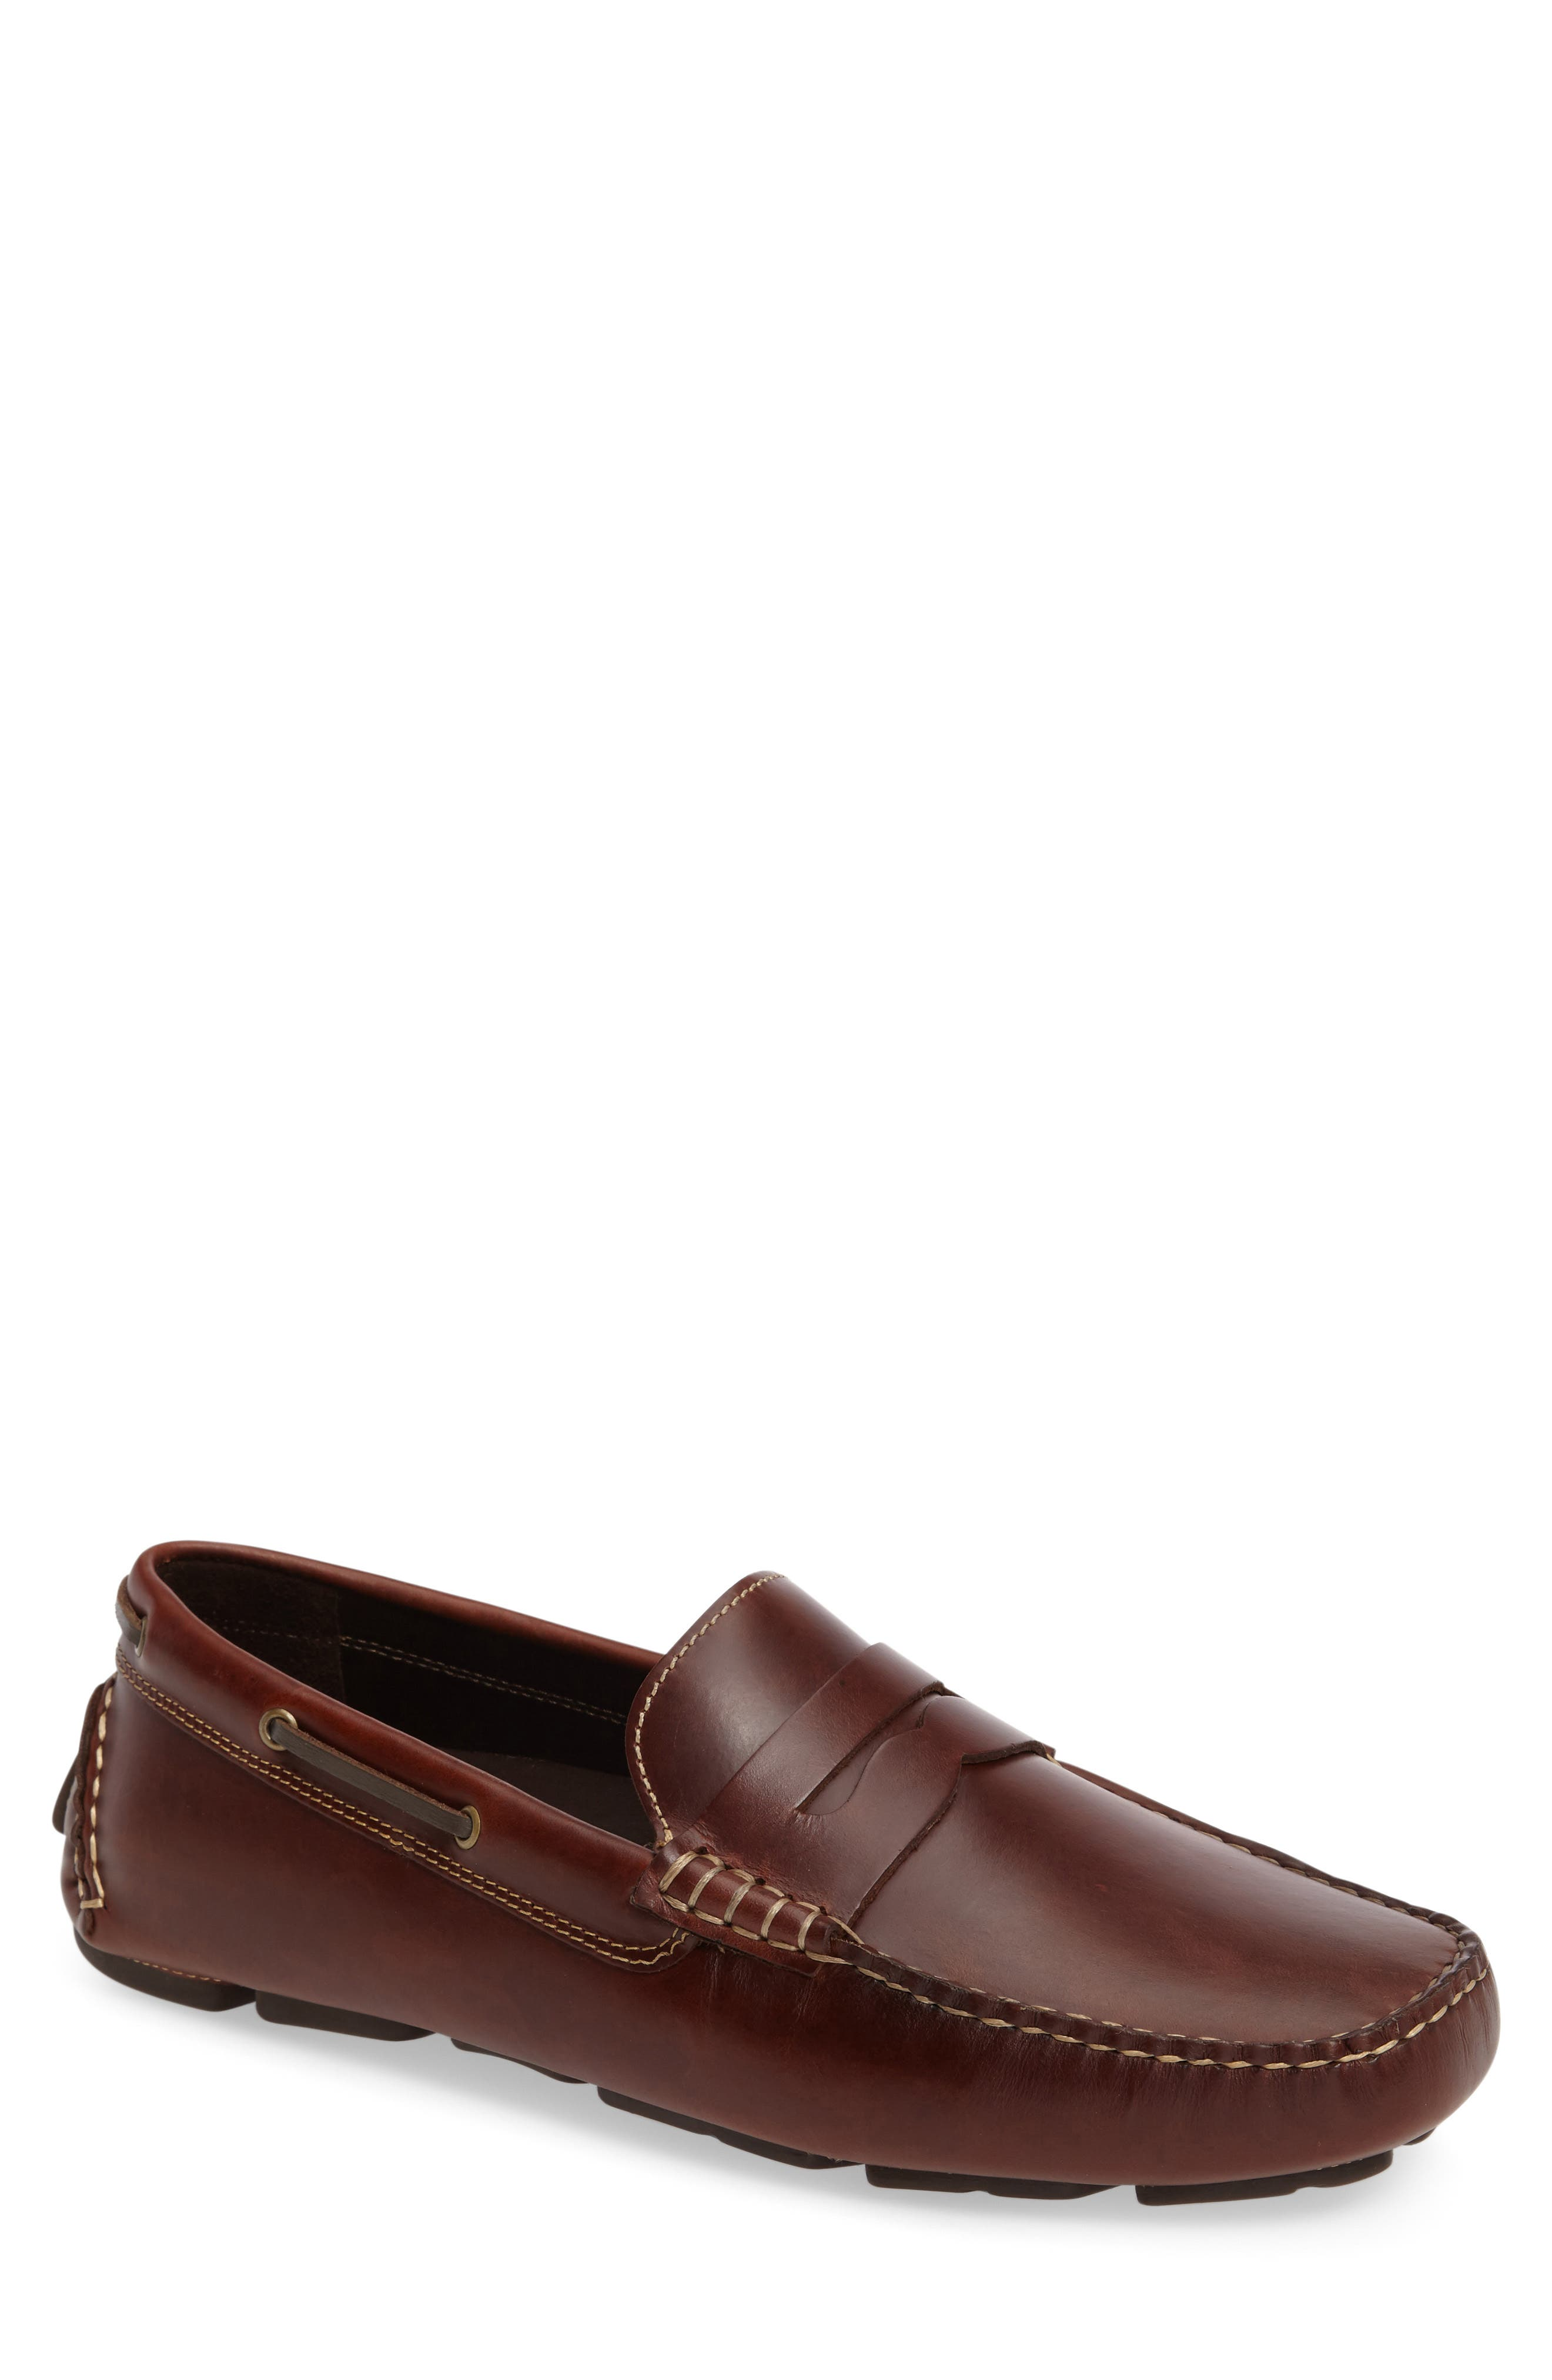 JOHNSTON & MURPHY, Gibson Penny Driving Loafer, Main thumbnail 1, color, TAN LEATHER